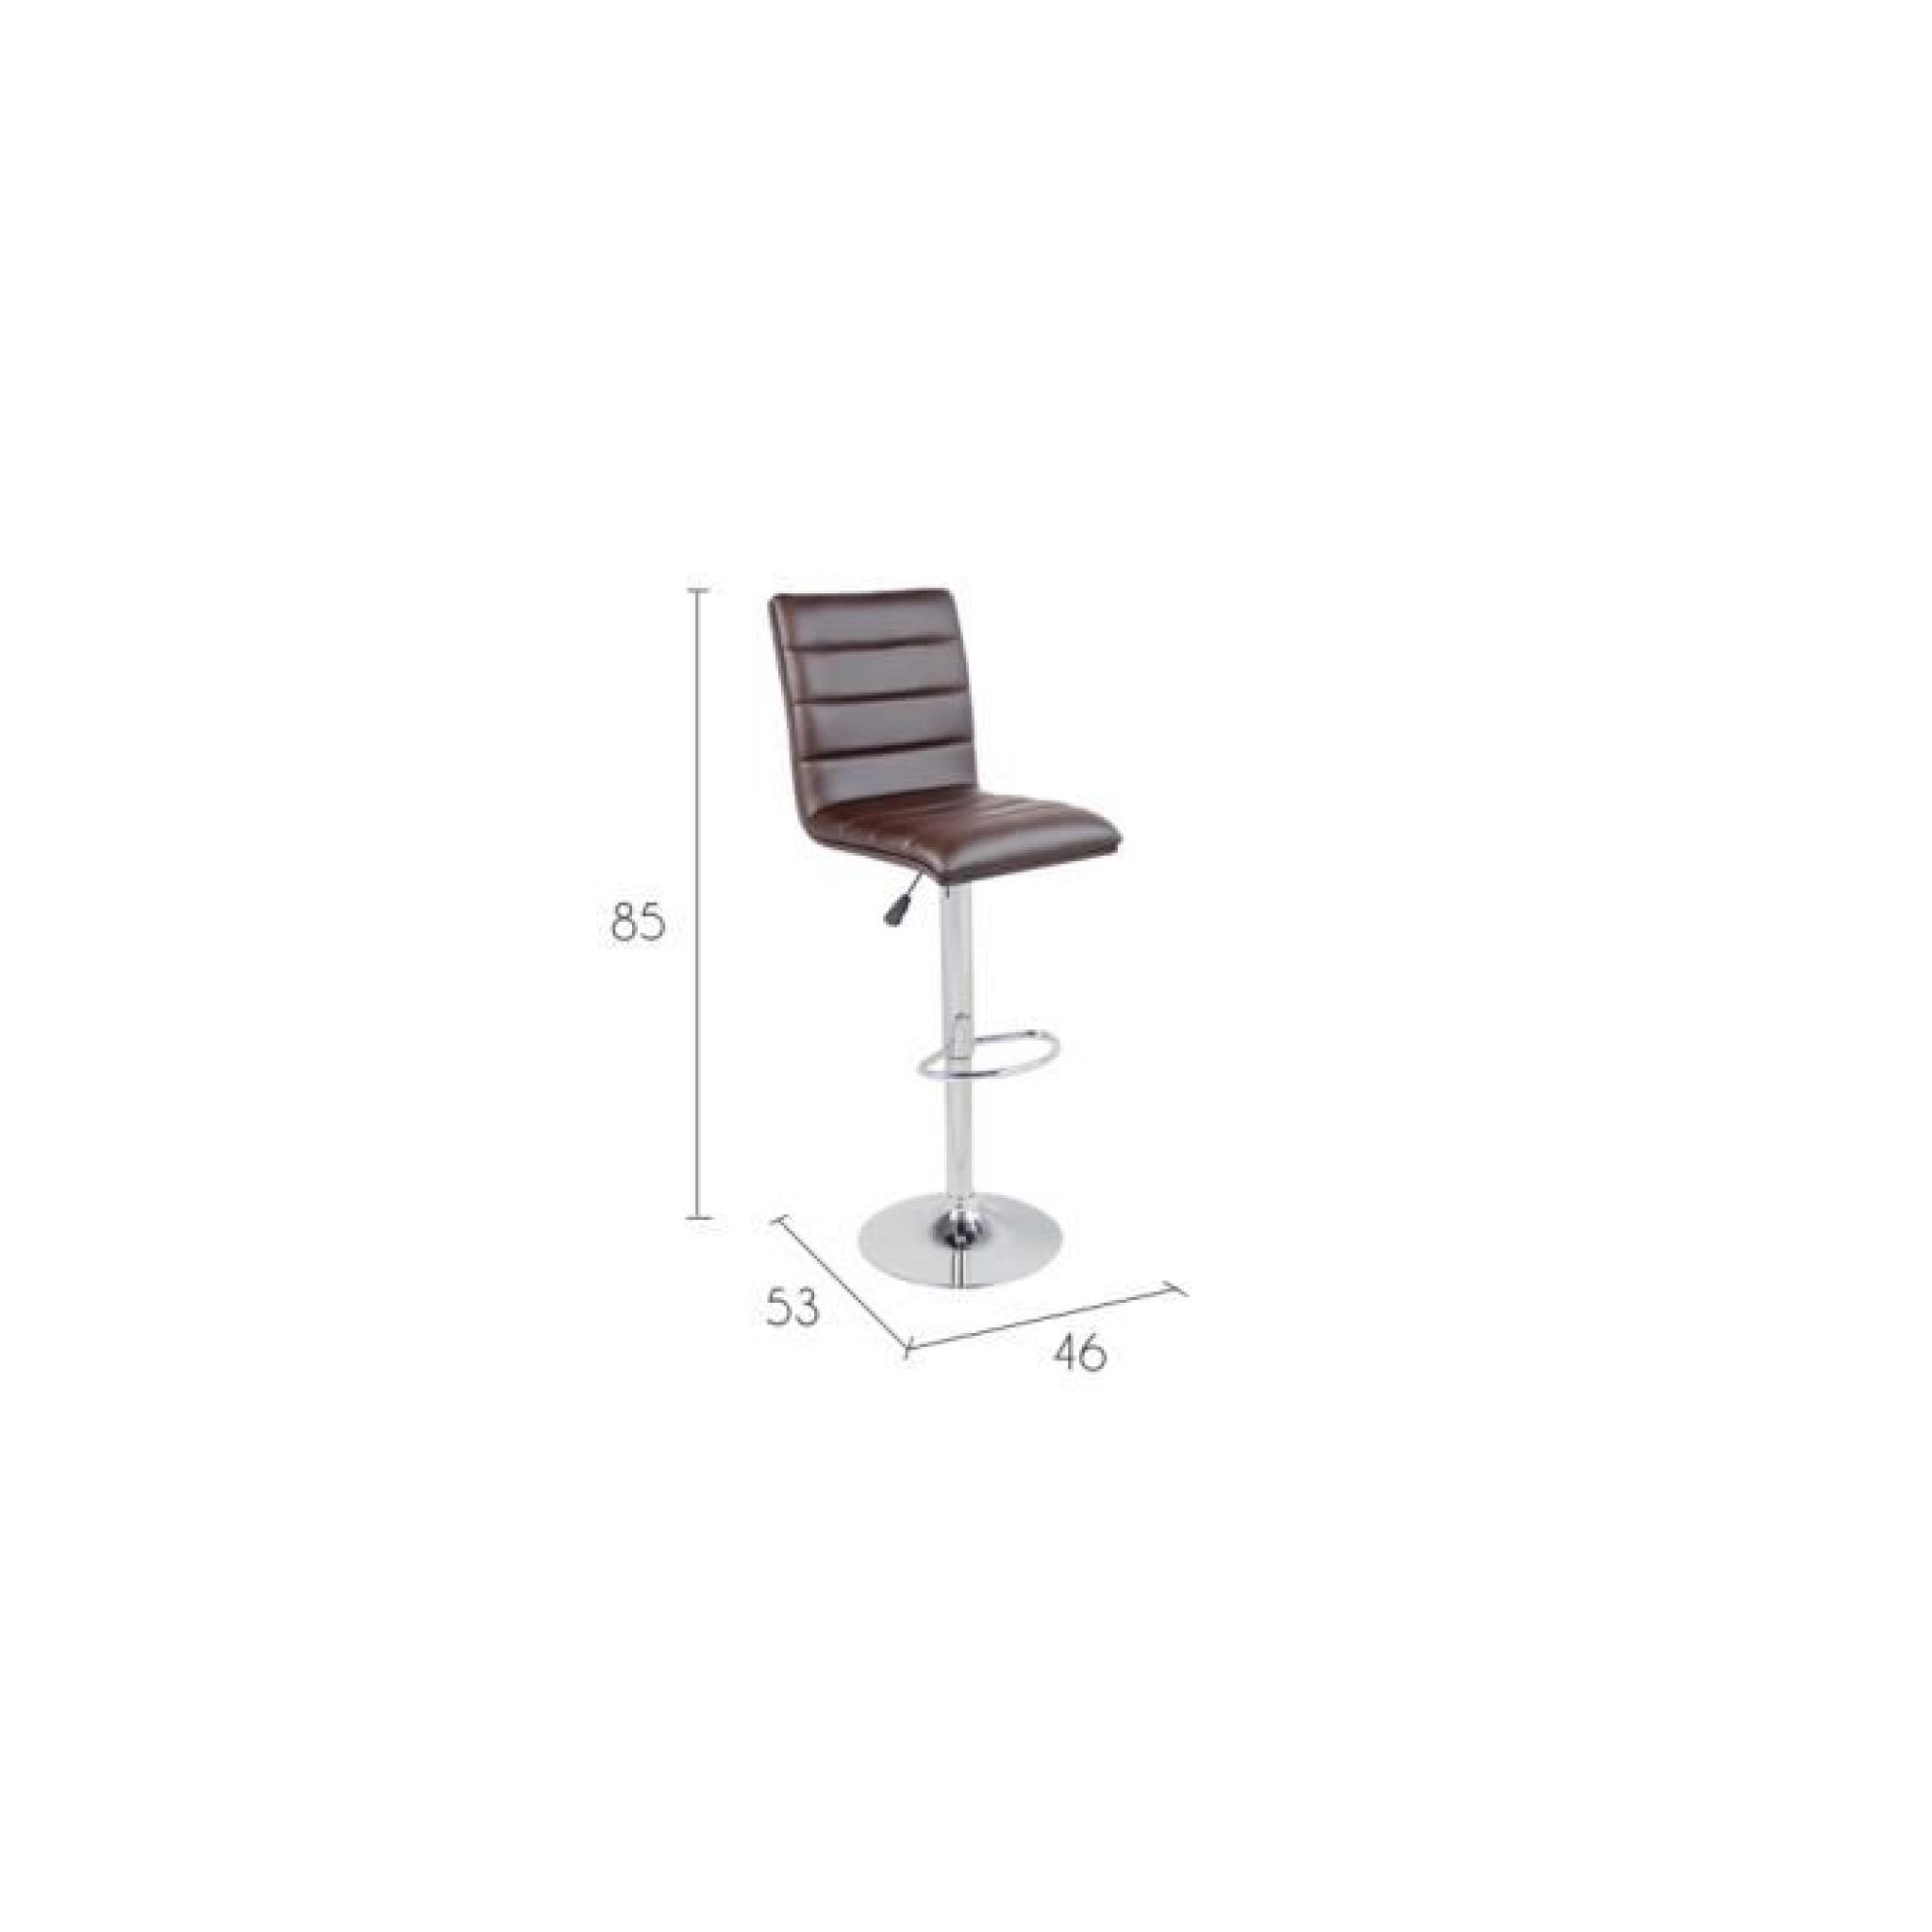 Tabouret de bar Swing chocolat (lot de 2) pas cher